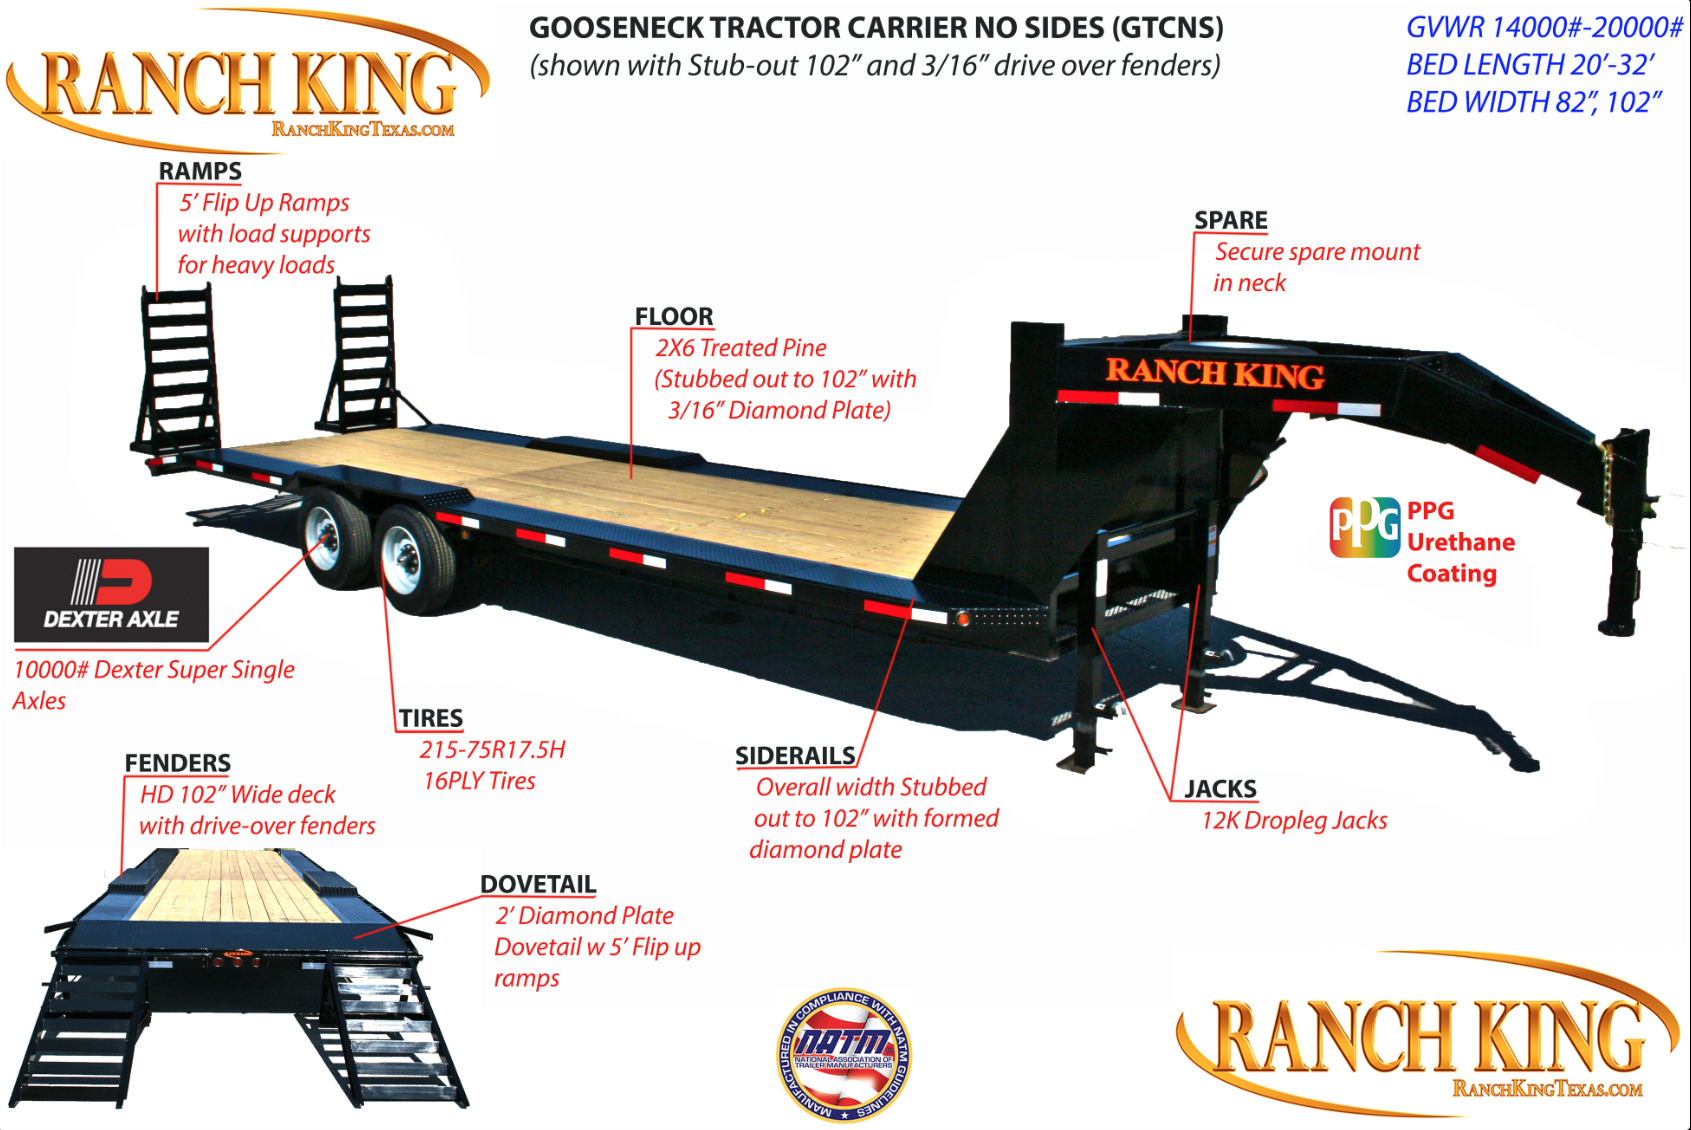 GTCNS Gooseneck Tractor Carrier No Sides